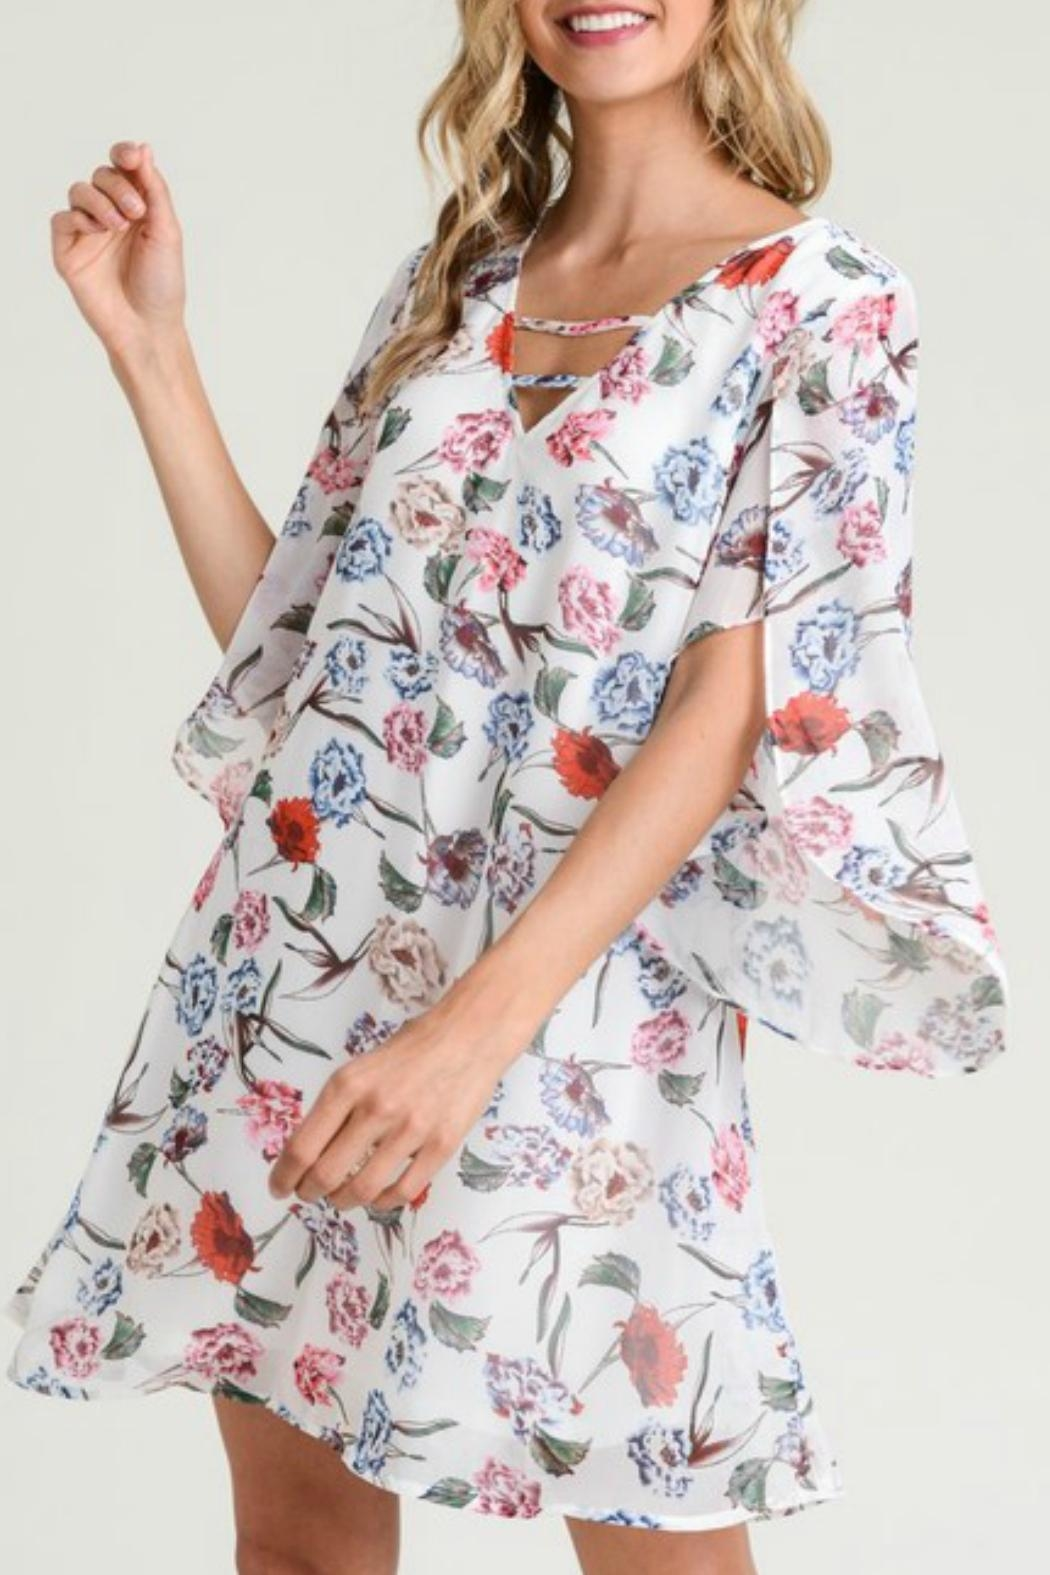 Jodifl Floral Open-Sleeve Dress - Main Image